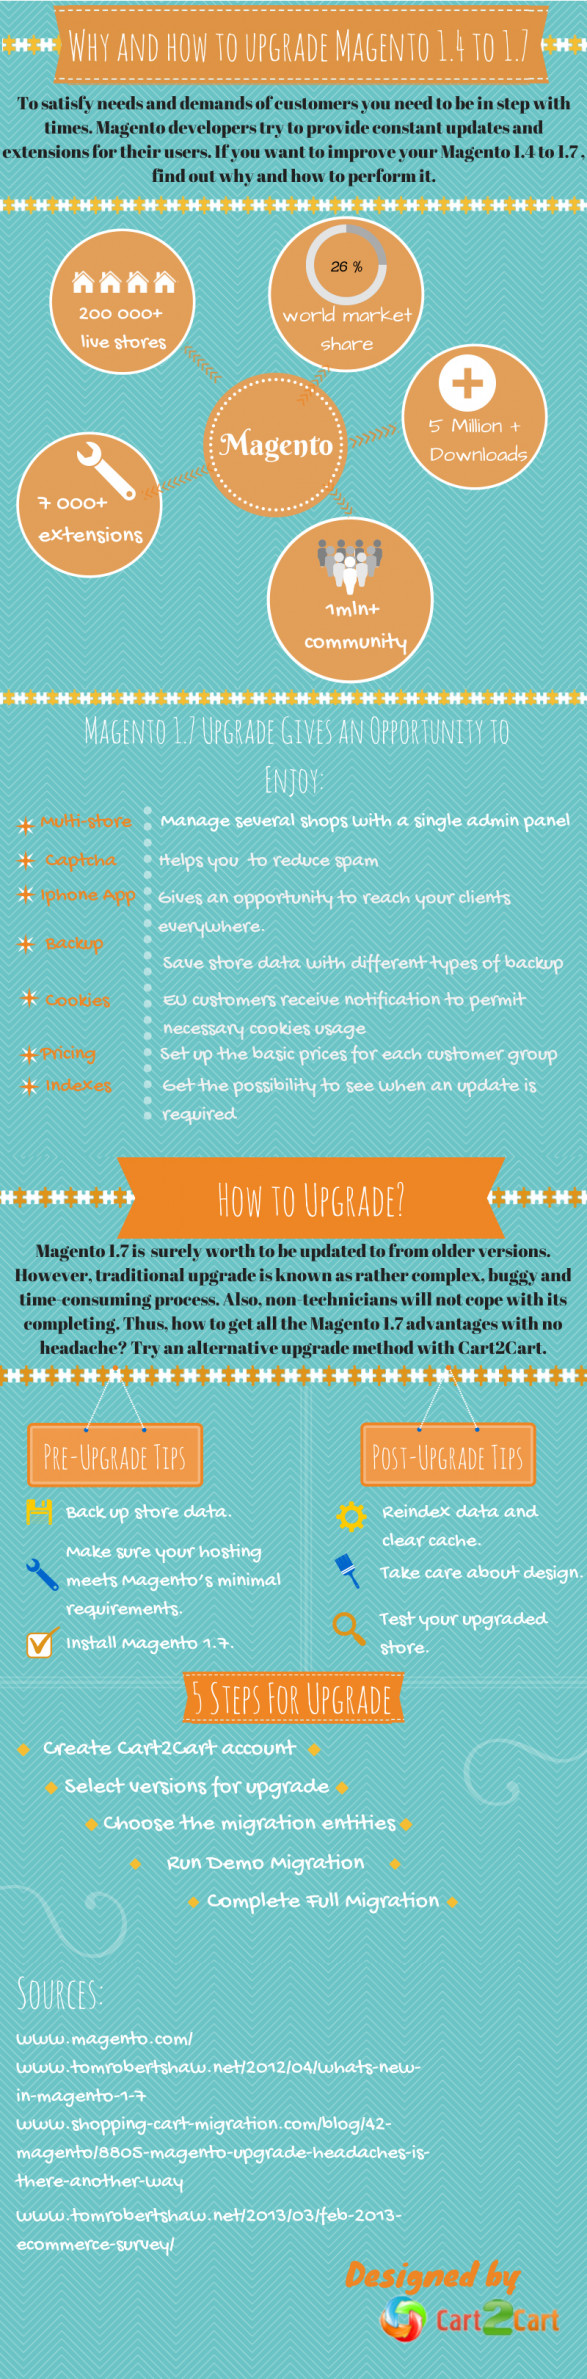 Why and How to Upgrade Magento 1.4 to 1.7